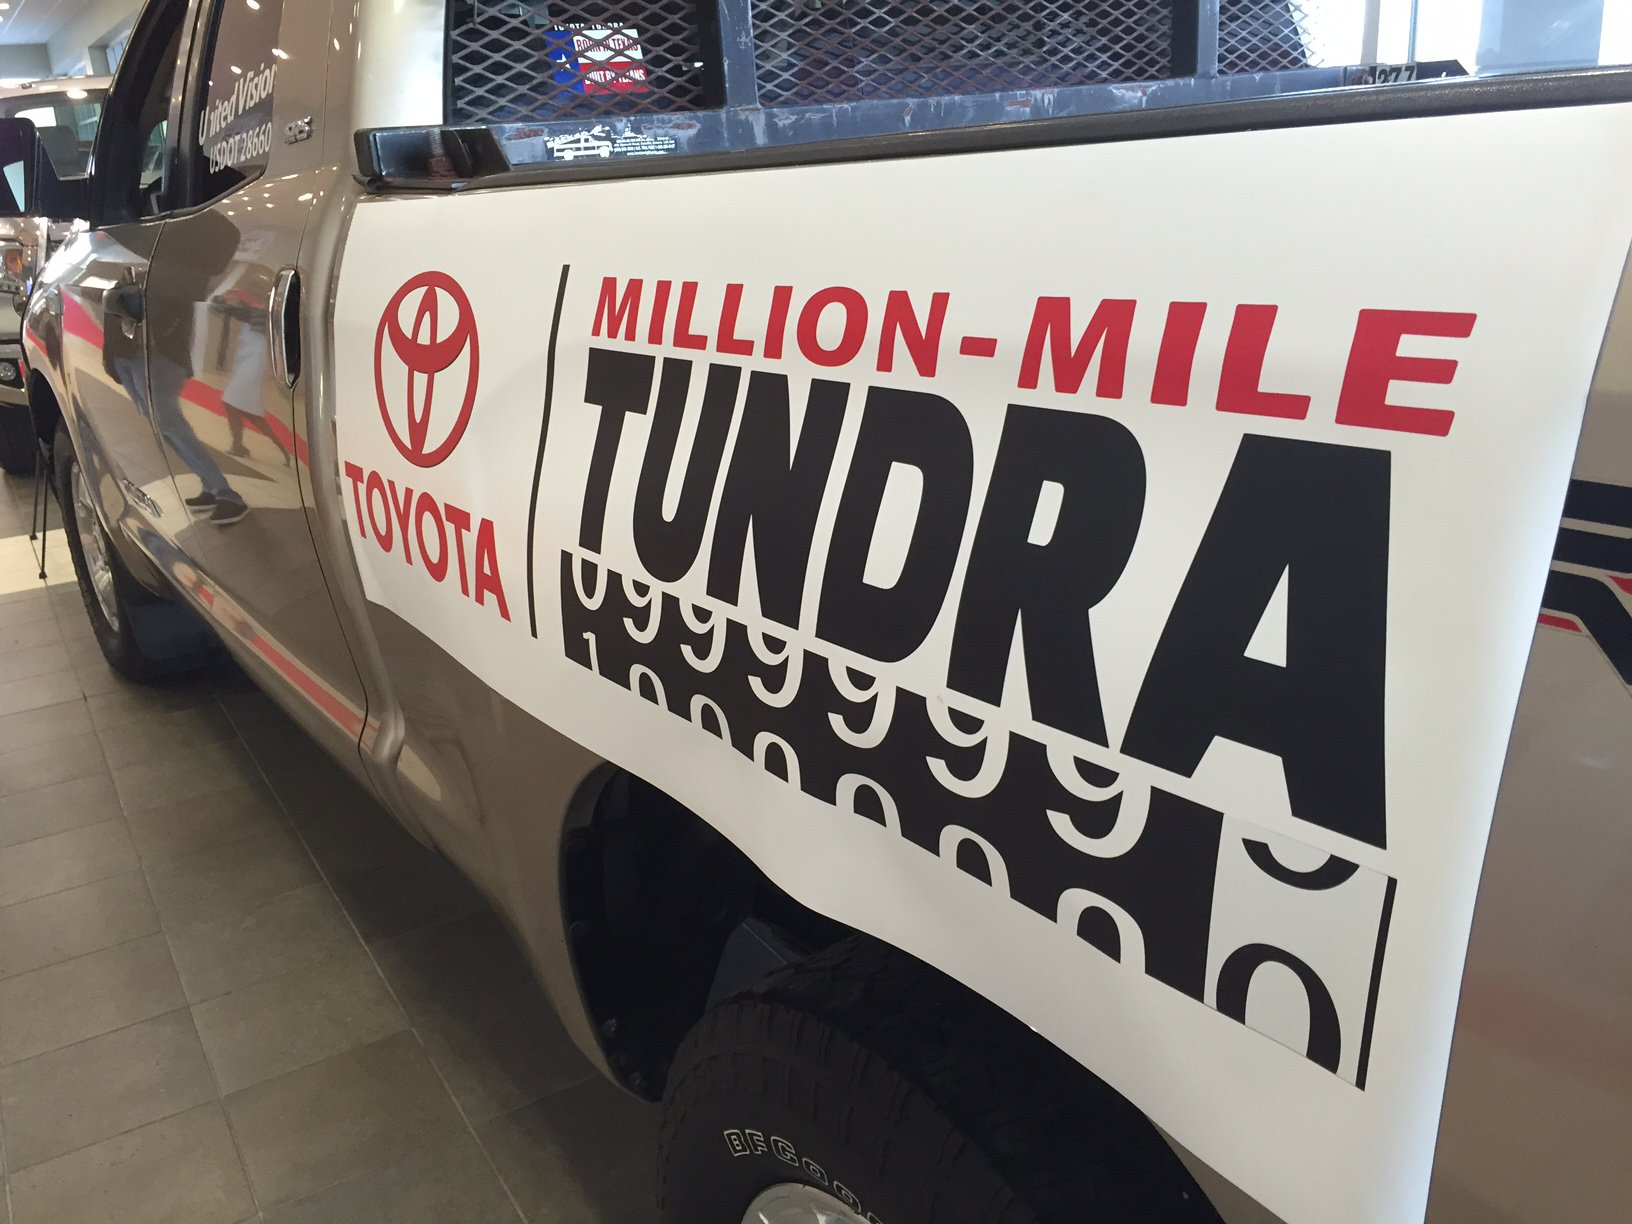 Million-mile-tundra-13